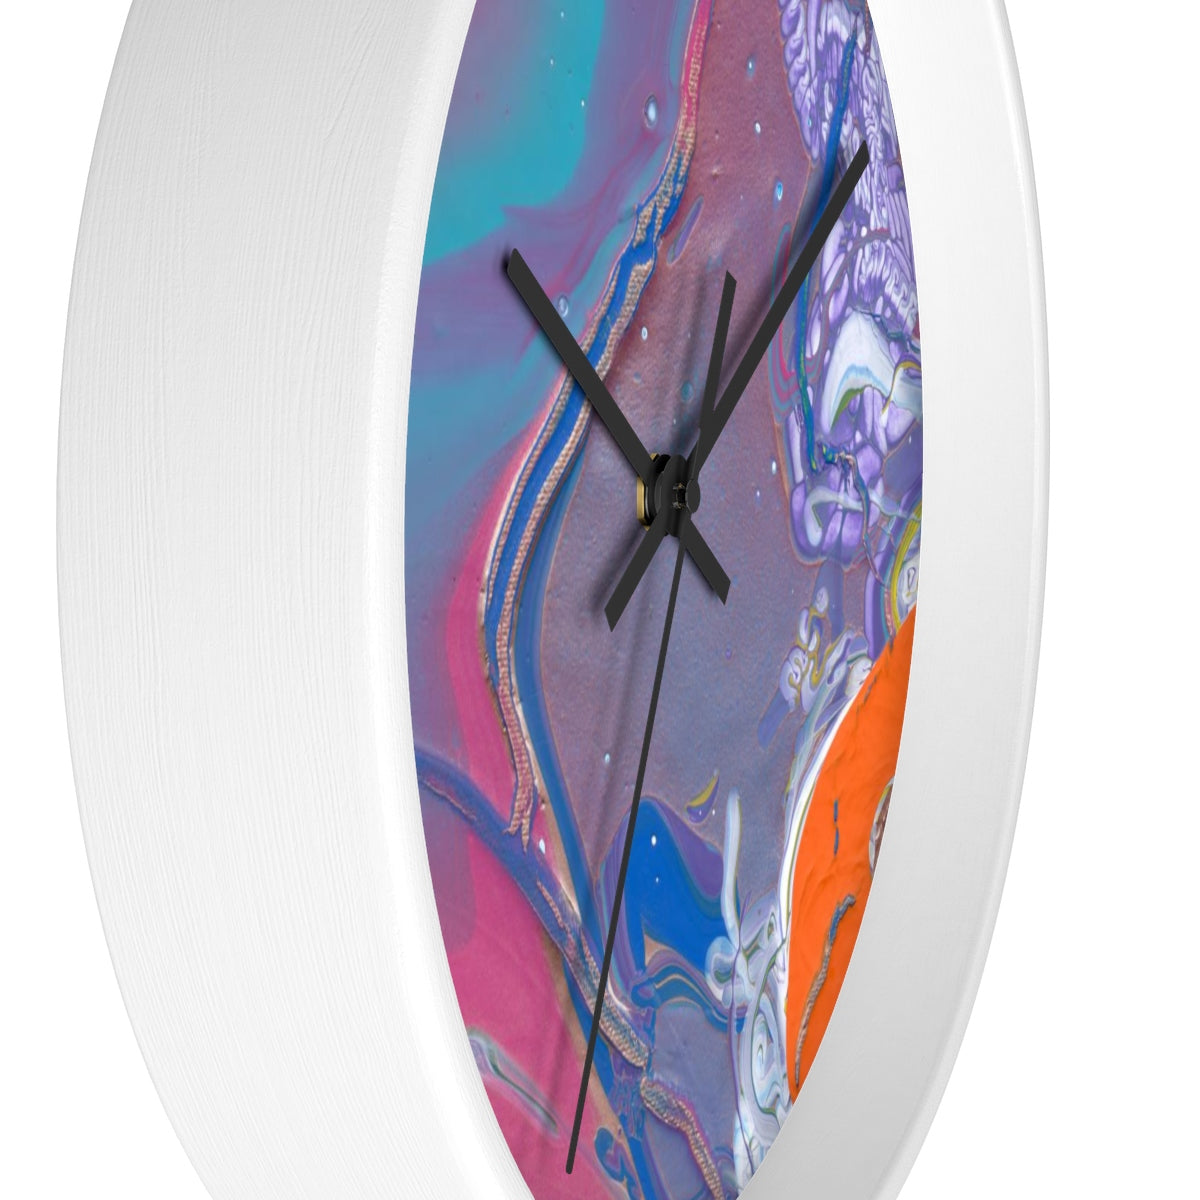 UNDER  WATER  LIFE  2  Wall clock  10""